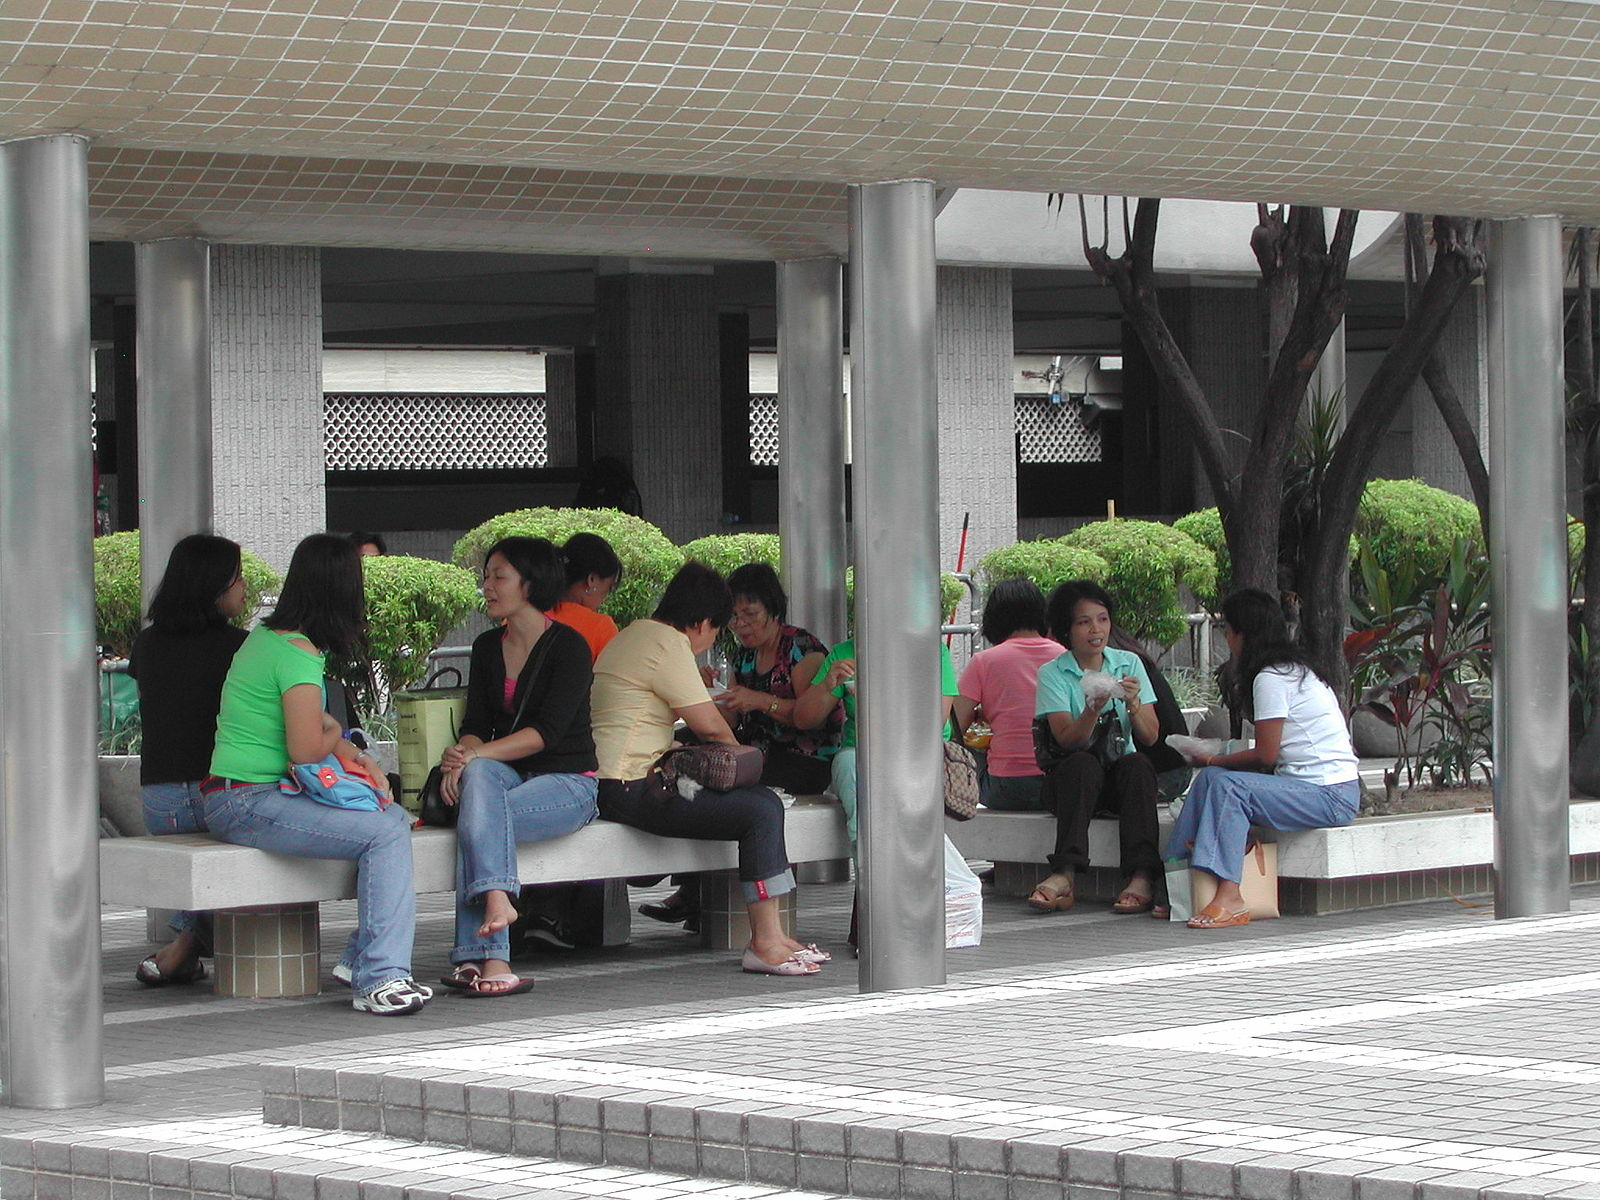 A group of female foreign domestic workers sitting on a bench in a sheltered area, chatting in small groups.